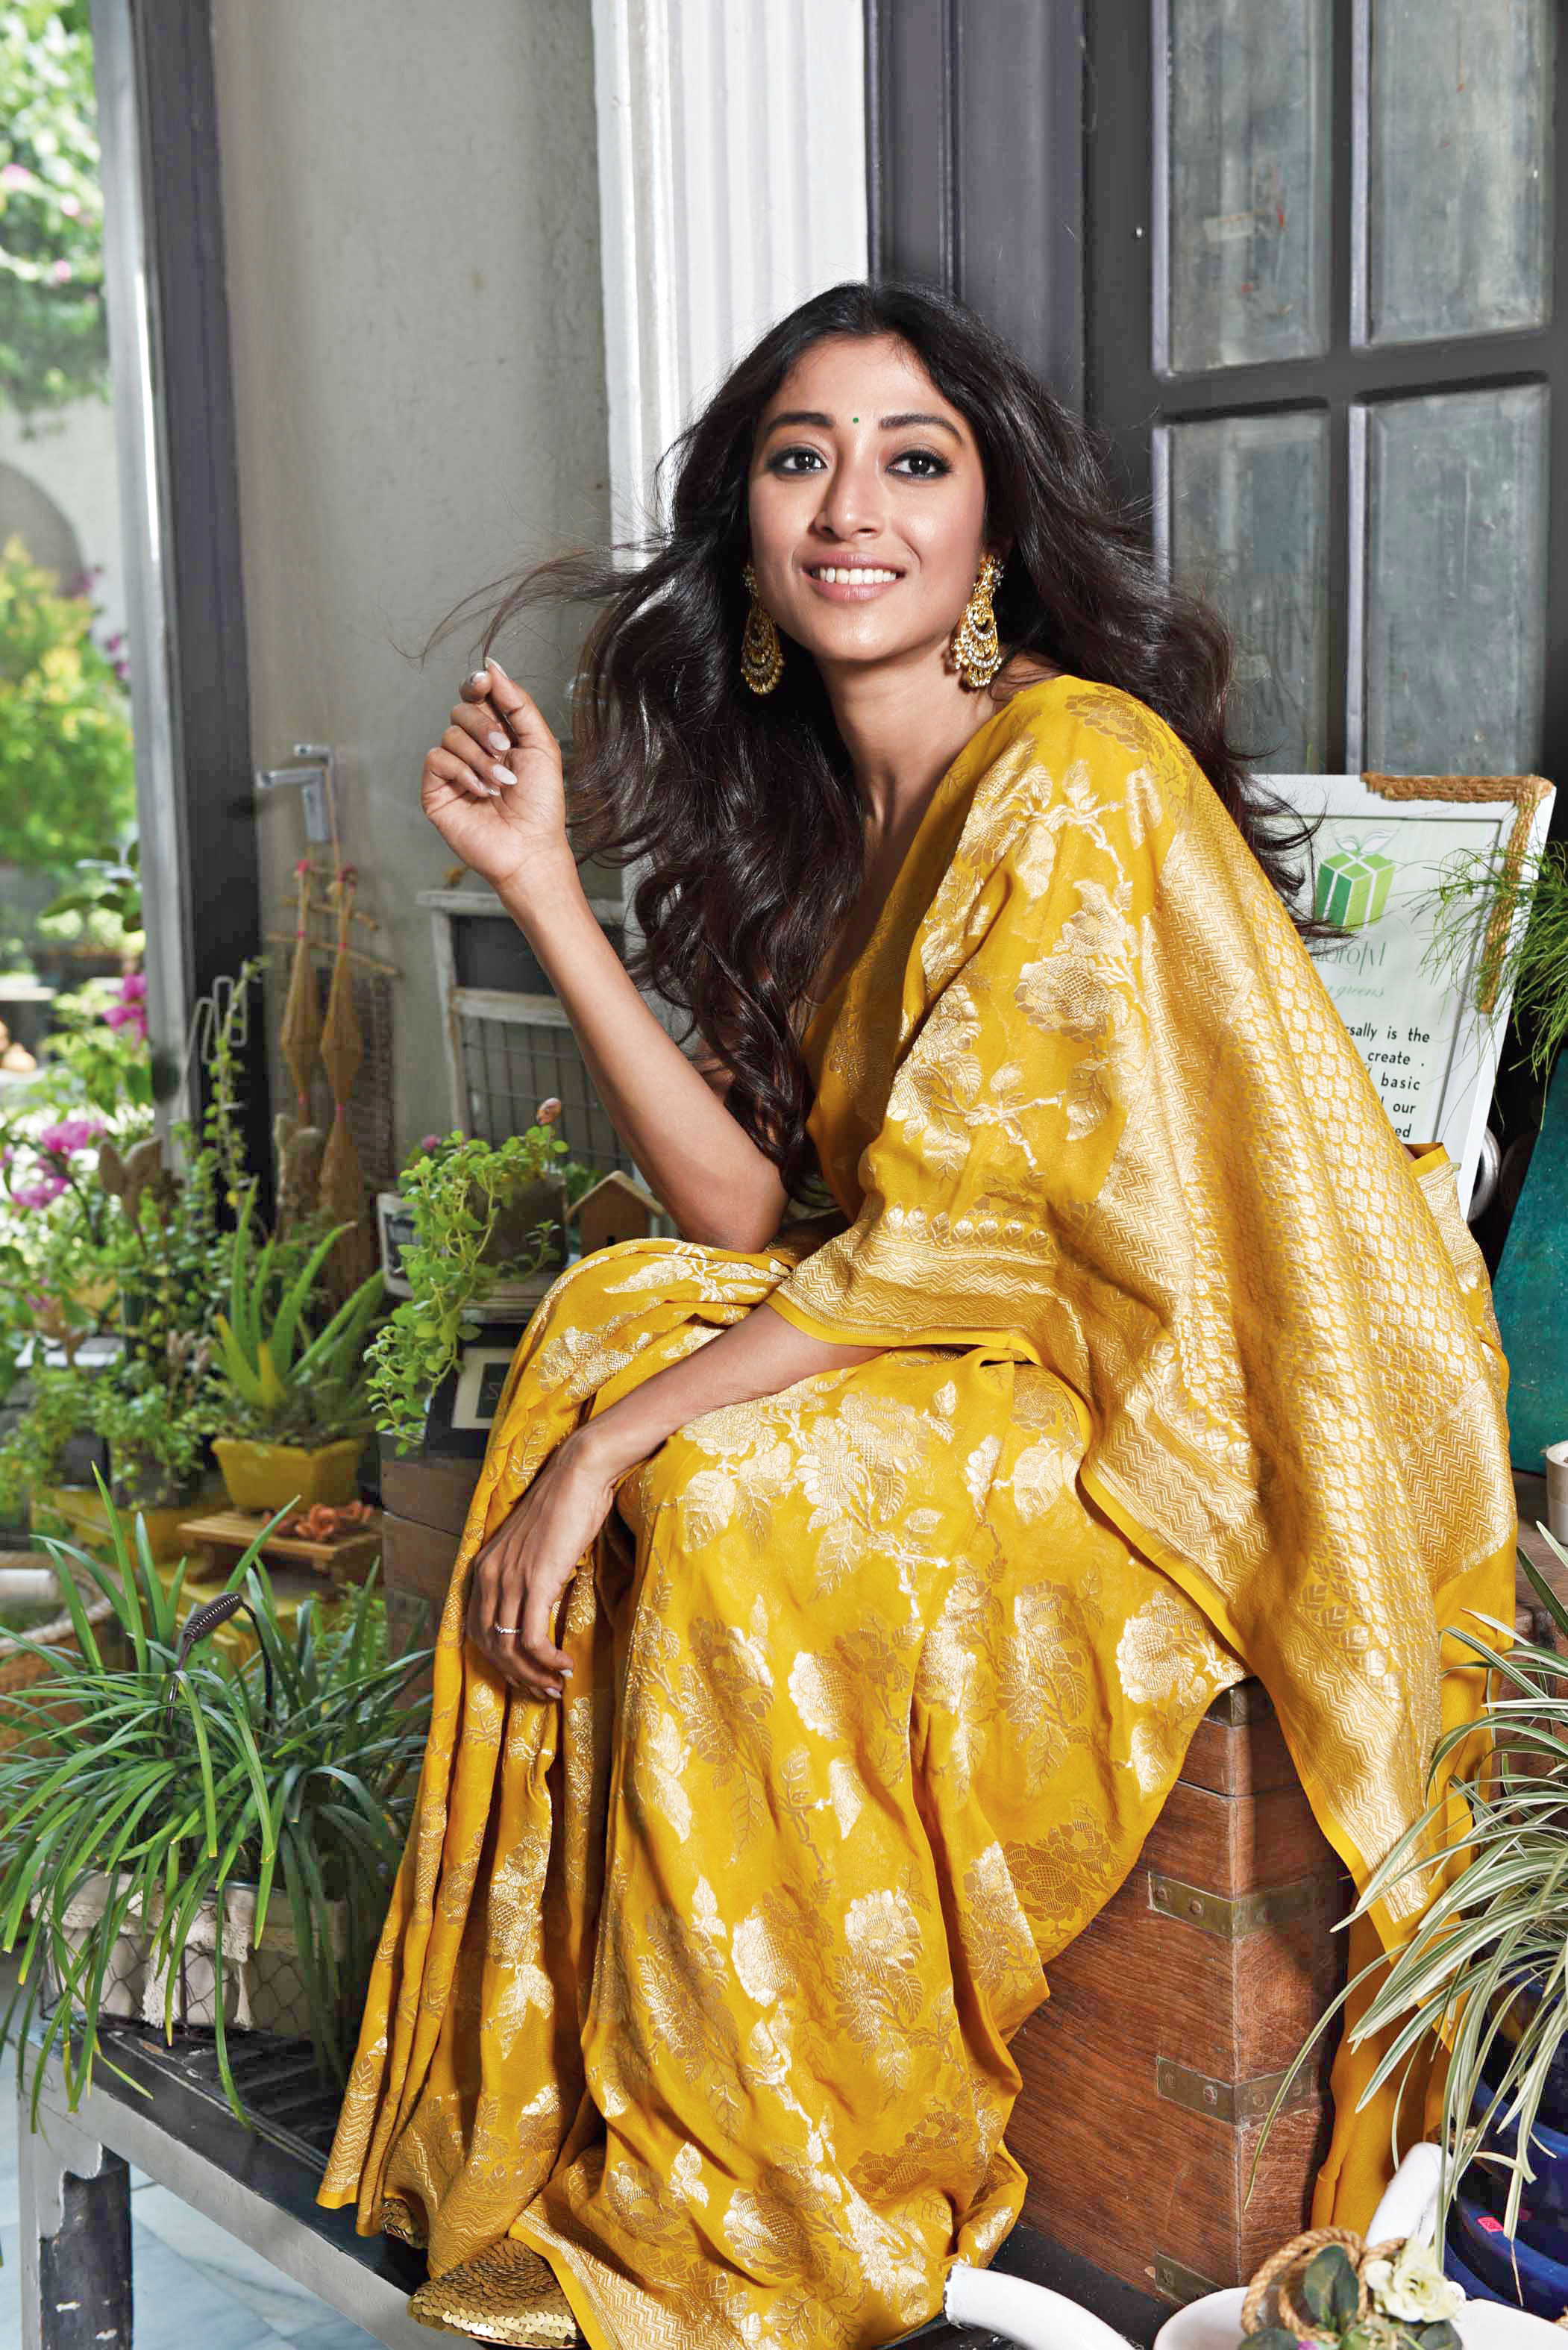 """Sultry simplicity defines this look. Paoli looked resplendent in a handwoven georgette karwa sari made gorgeous with bel and foliage motifs. """"It's lightweight yet the weave is rich because of the use of both silver and gold at the same time. The fabric is comfortable to be worn in this weather. The bride can wear it for one of her main functions,"""" said Pinki. Winged, kohl eyes, nude lips, small bindi, chaandbaali earrings and casual hair add to the look. """"I have worn georgette Benarasi before. The fabric is light on the skin. I like lightweight fabrics for summers and this is perfect. It's a very versatile colour… something both the bride and the bride's mom can wear. While the bride's mom can wear it during the evening, the bride can wear it for her gaaye holud. Fantastic!"""" said Paoli."""